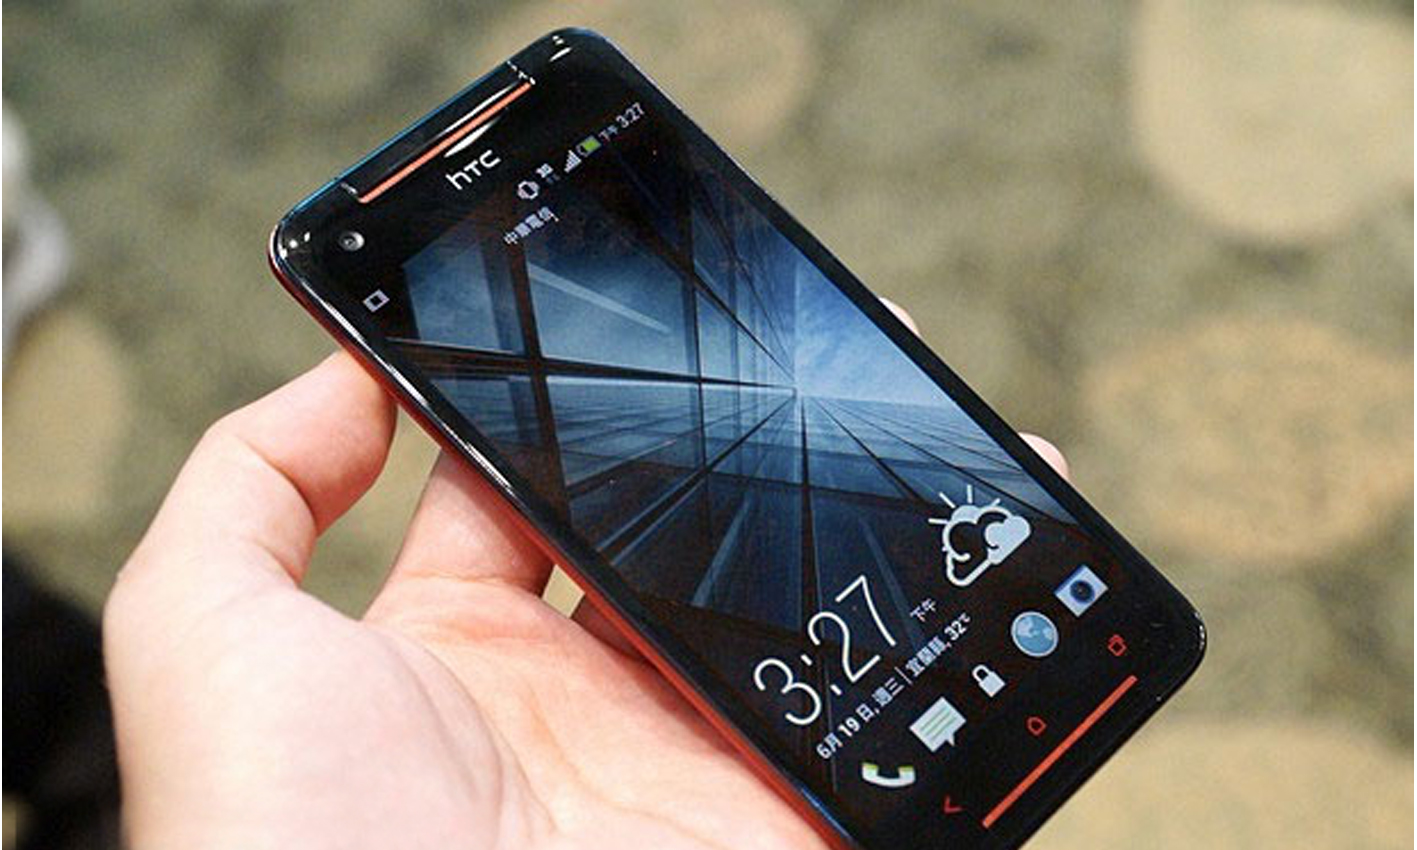 HTC Butterfly S out, HTC new product, HTC butterfly S New, HTC new product